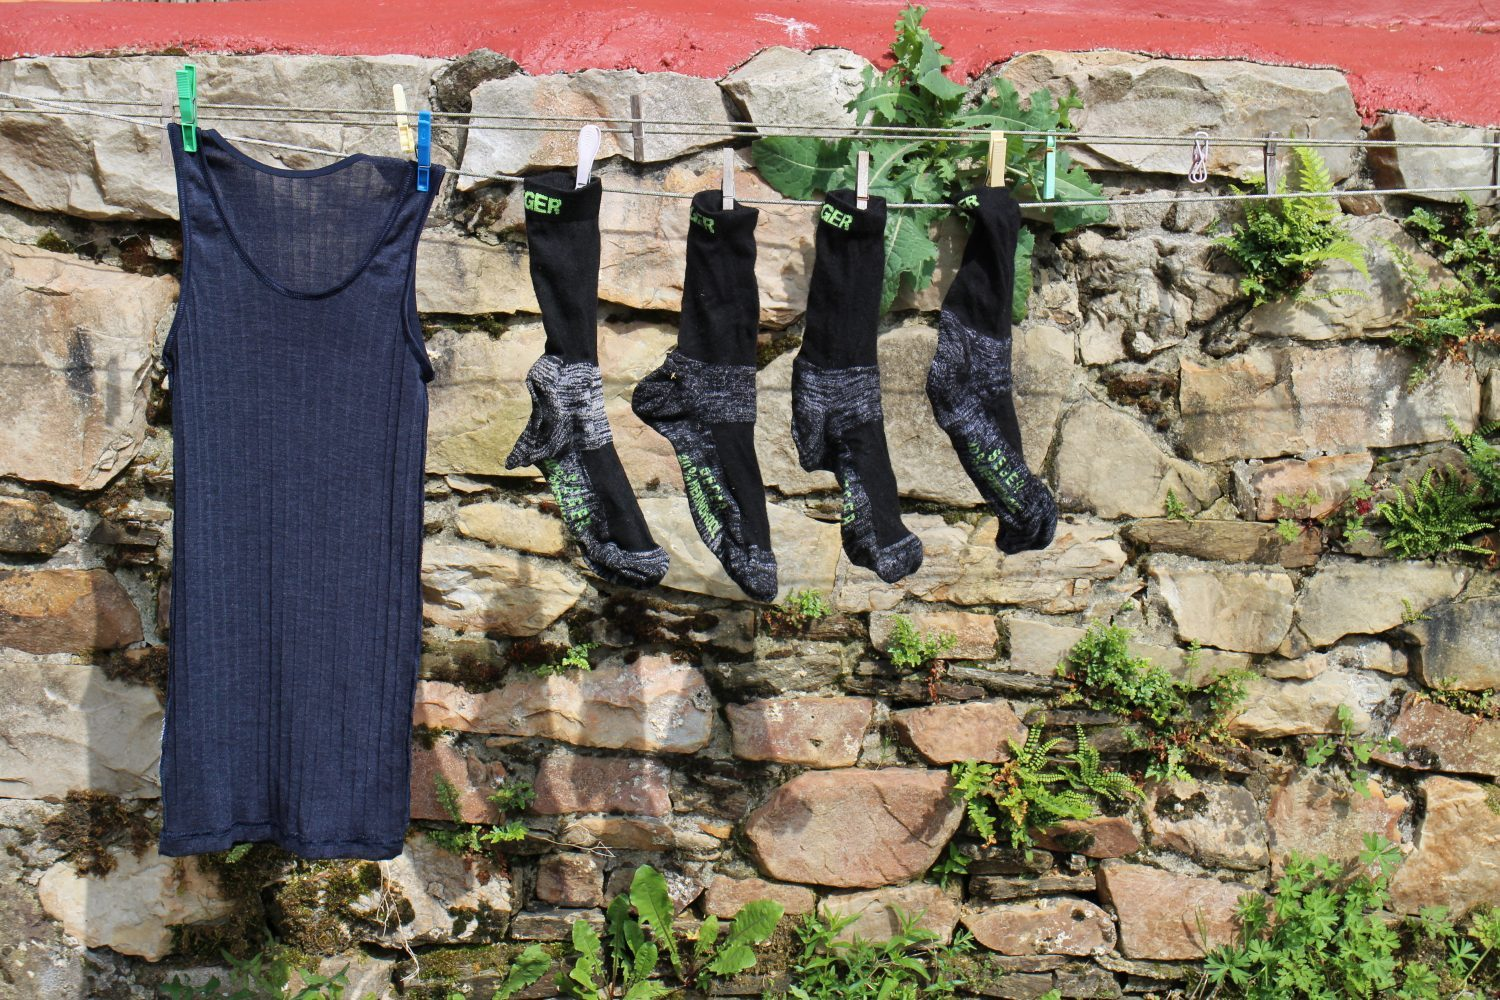 Washing and drying clothes on the camino